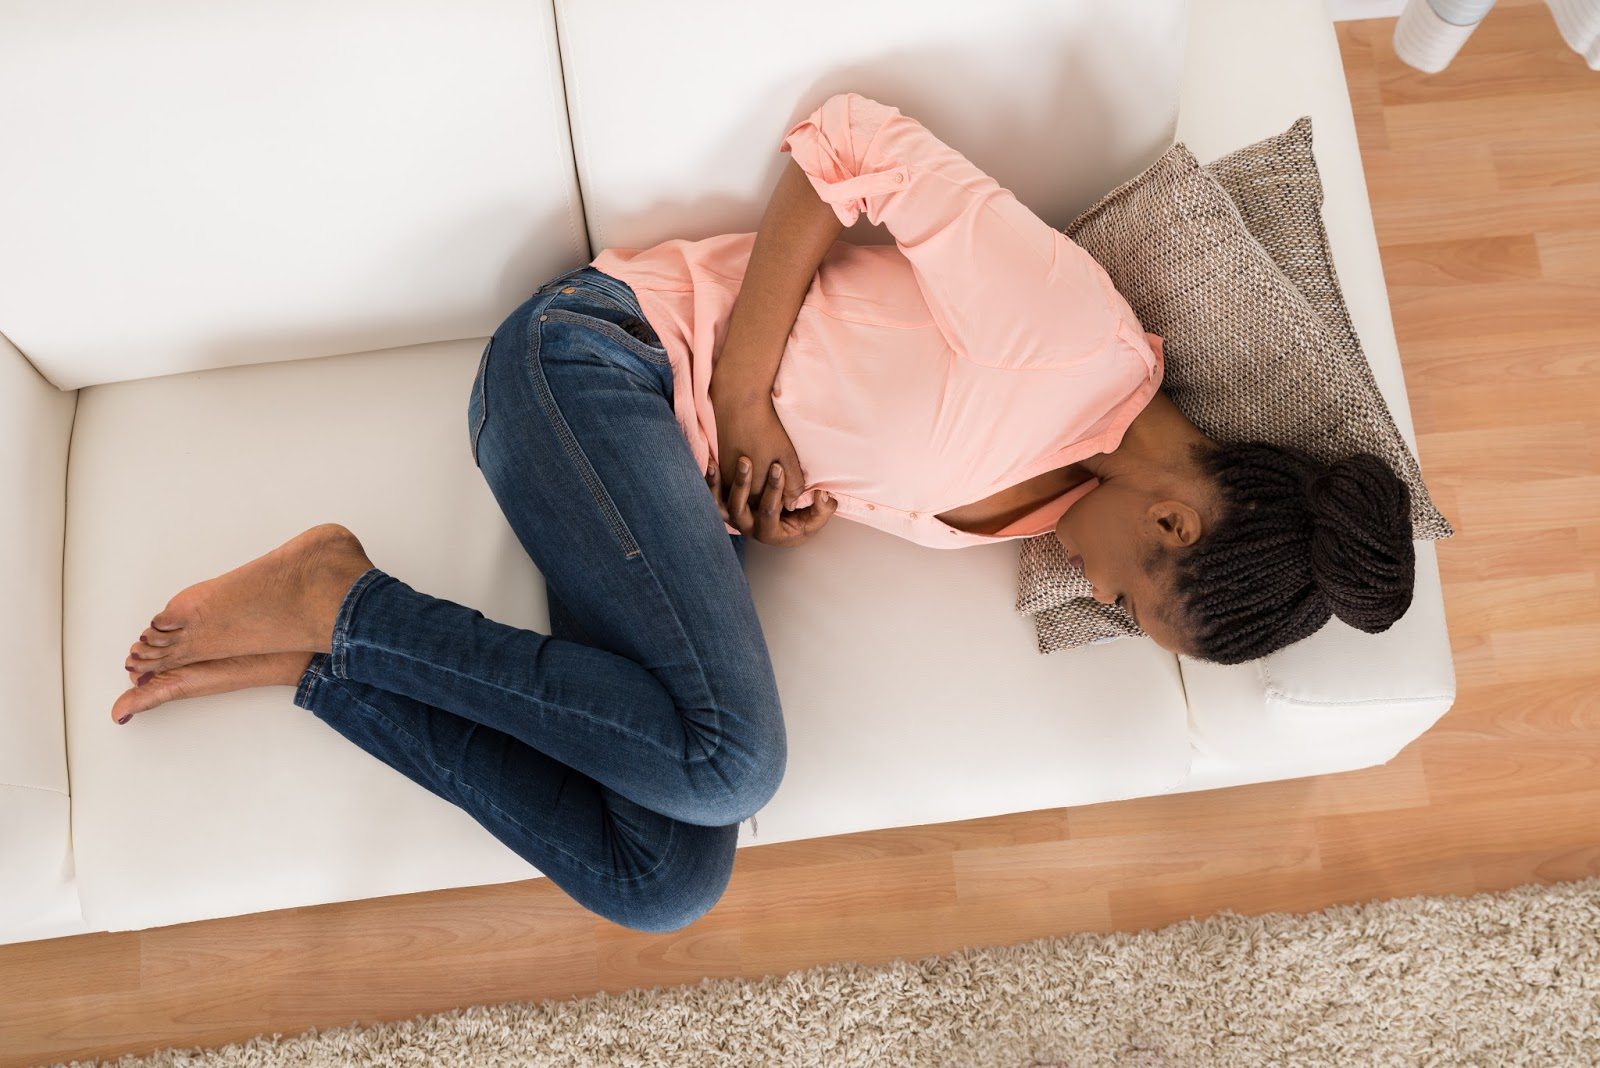 Image result for african woman period pain